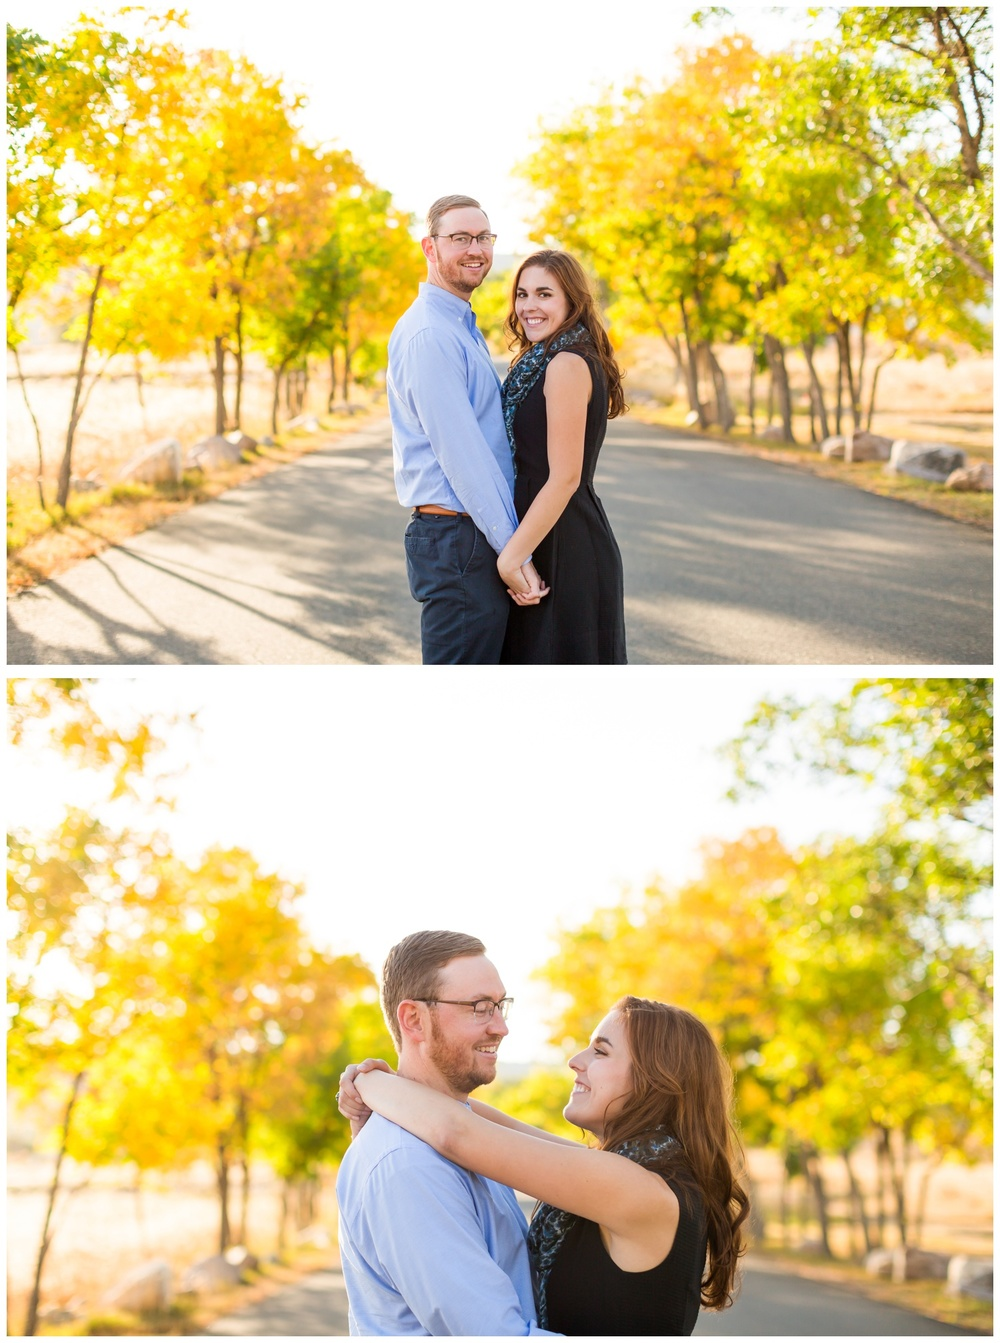 denver engagement photography02.jpg